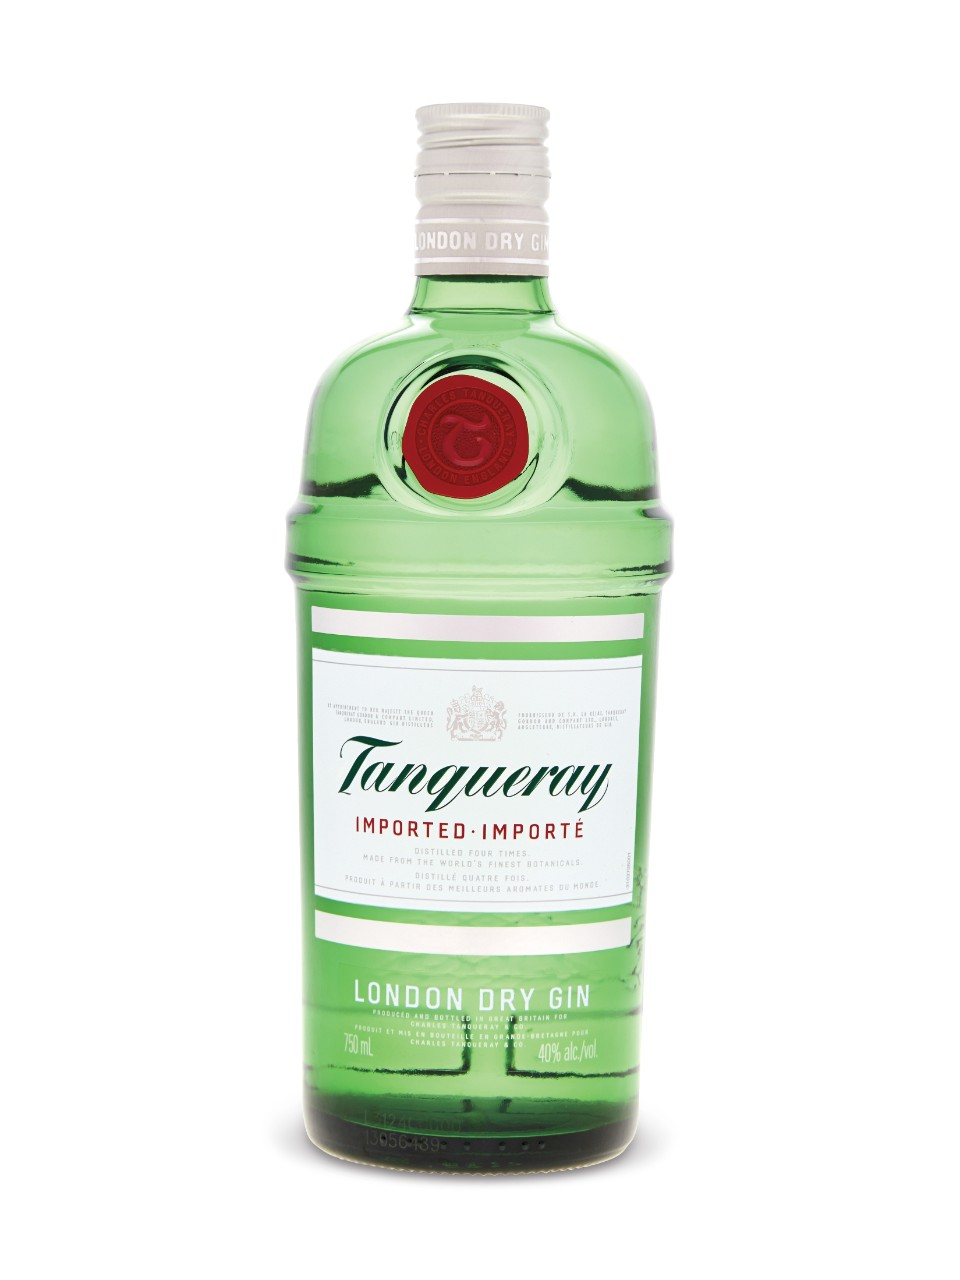 Tanqueray Dry Gin from LCBO